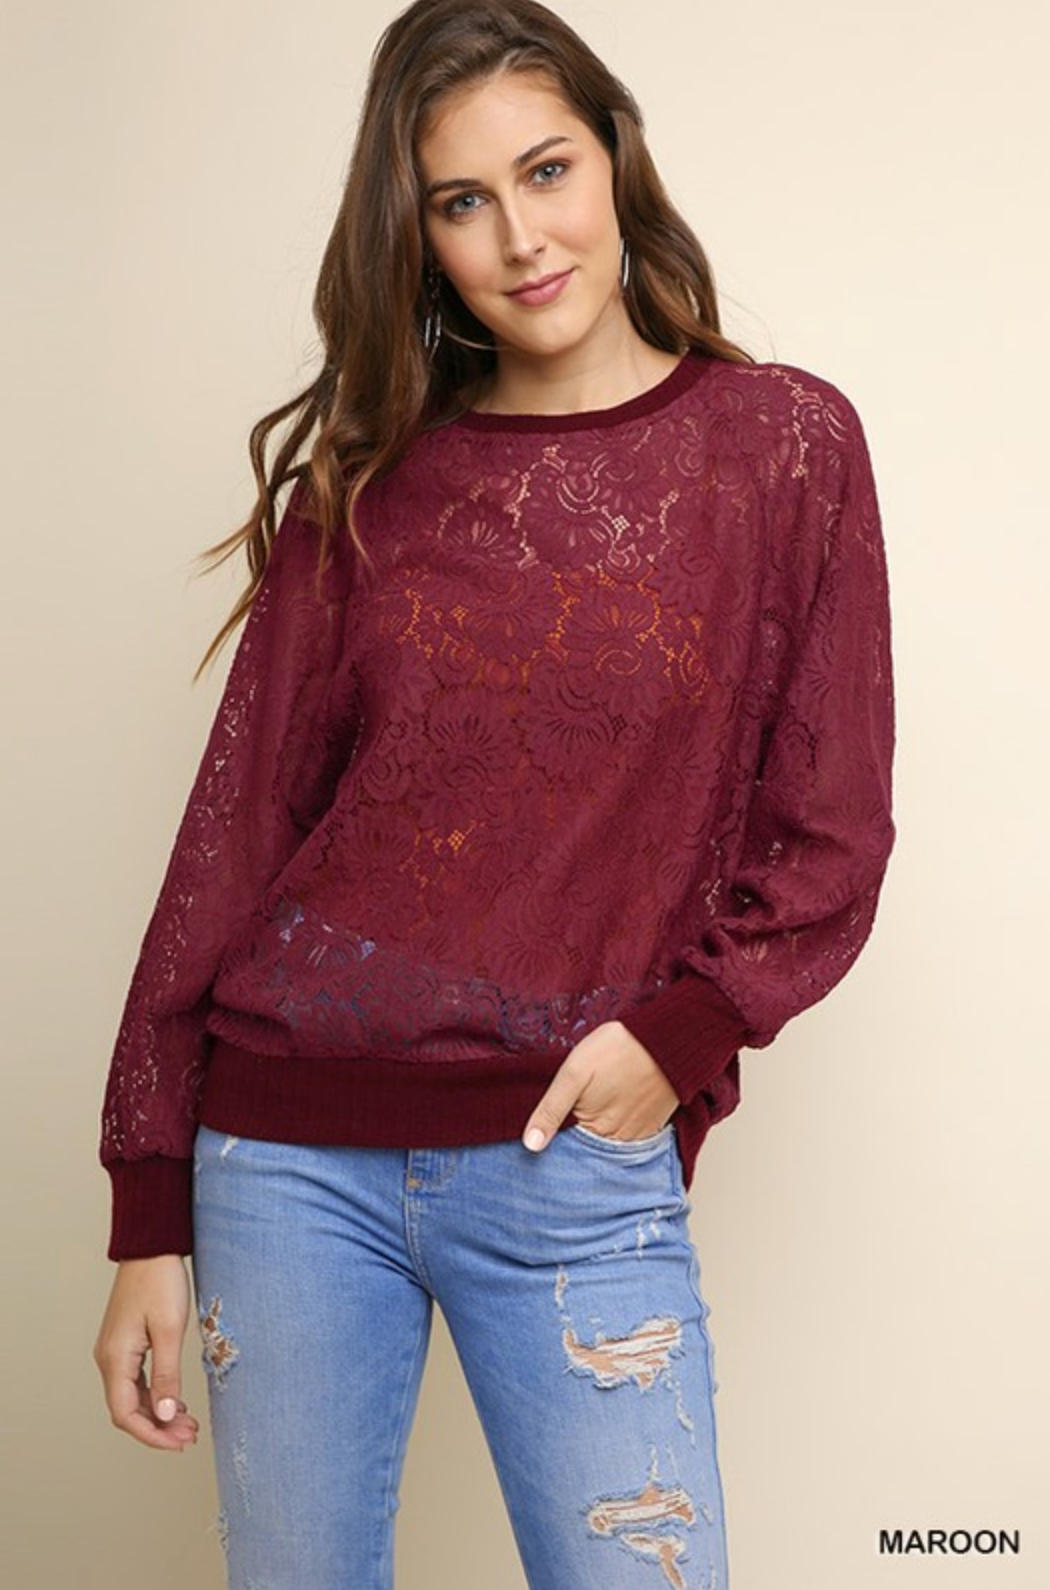 Sheer Floral Lace Long Sleeve Top